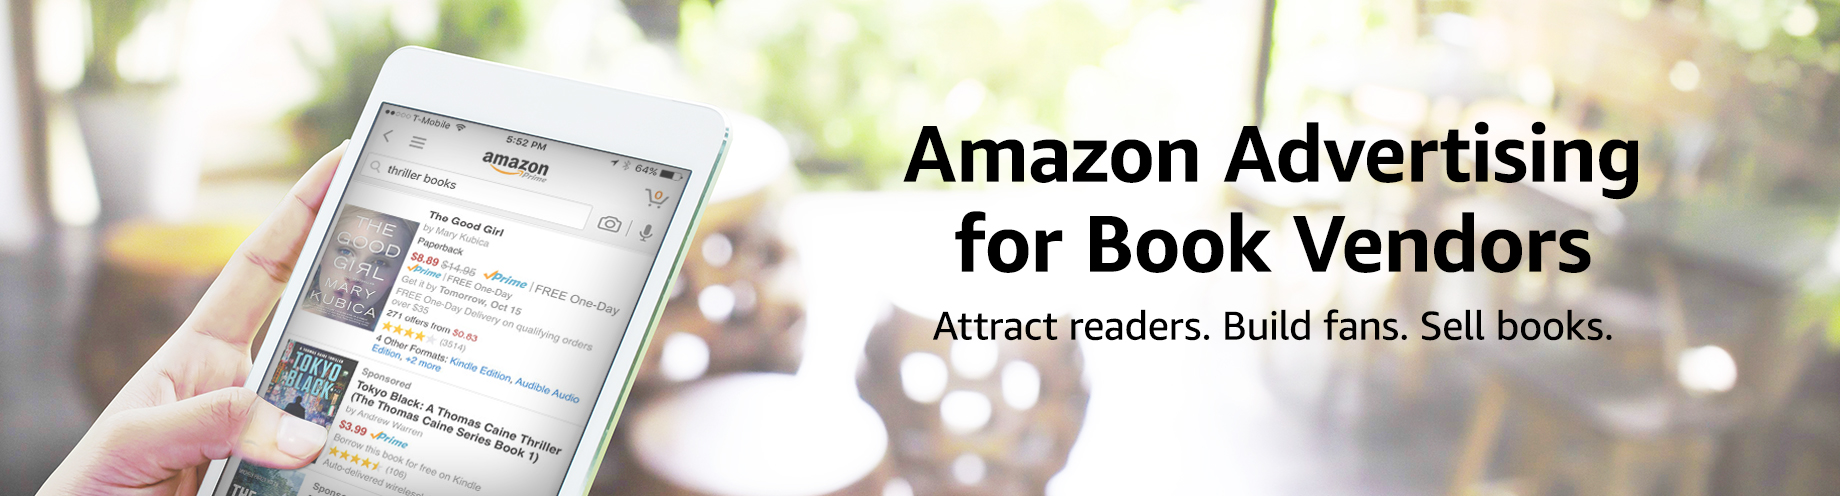 Amazon Marketing Services for Book Vendors